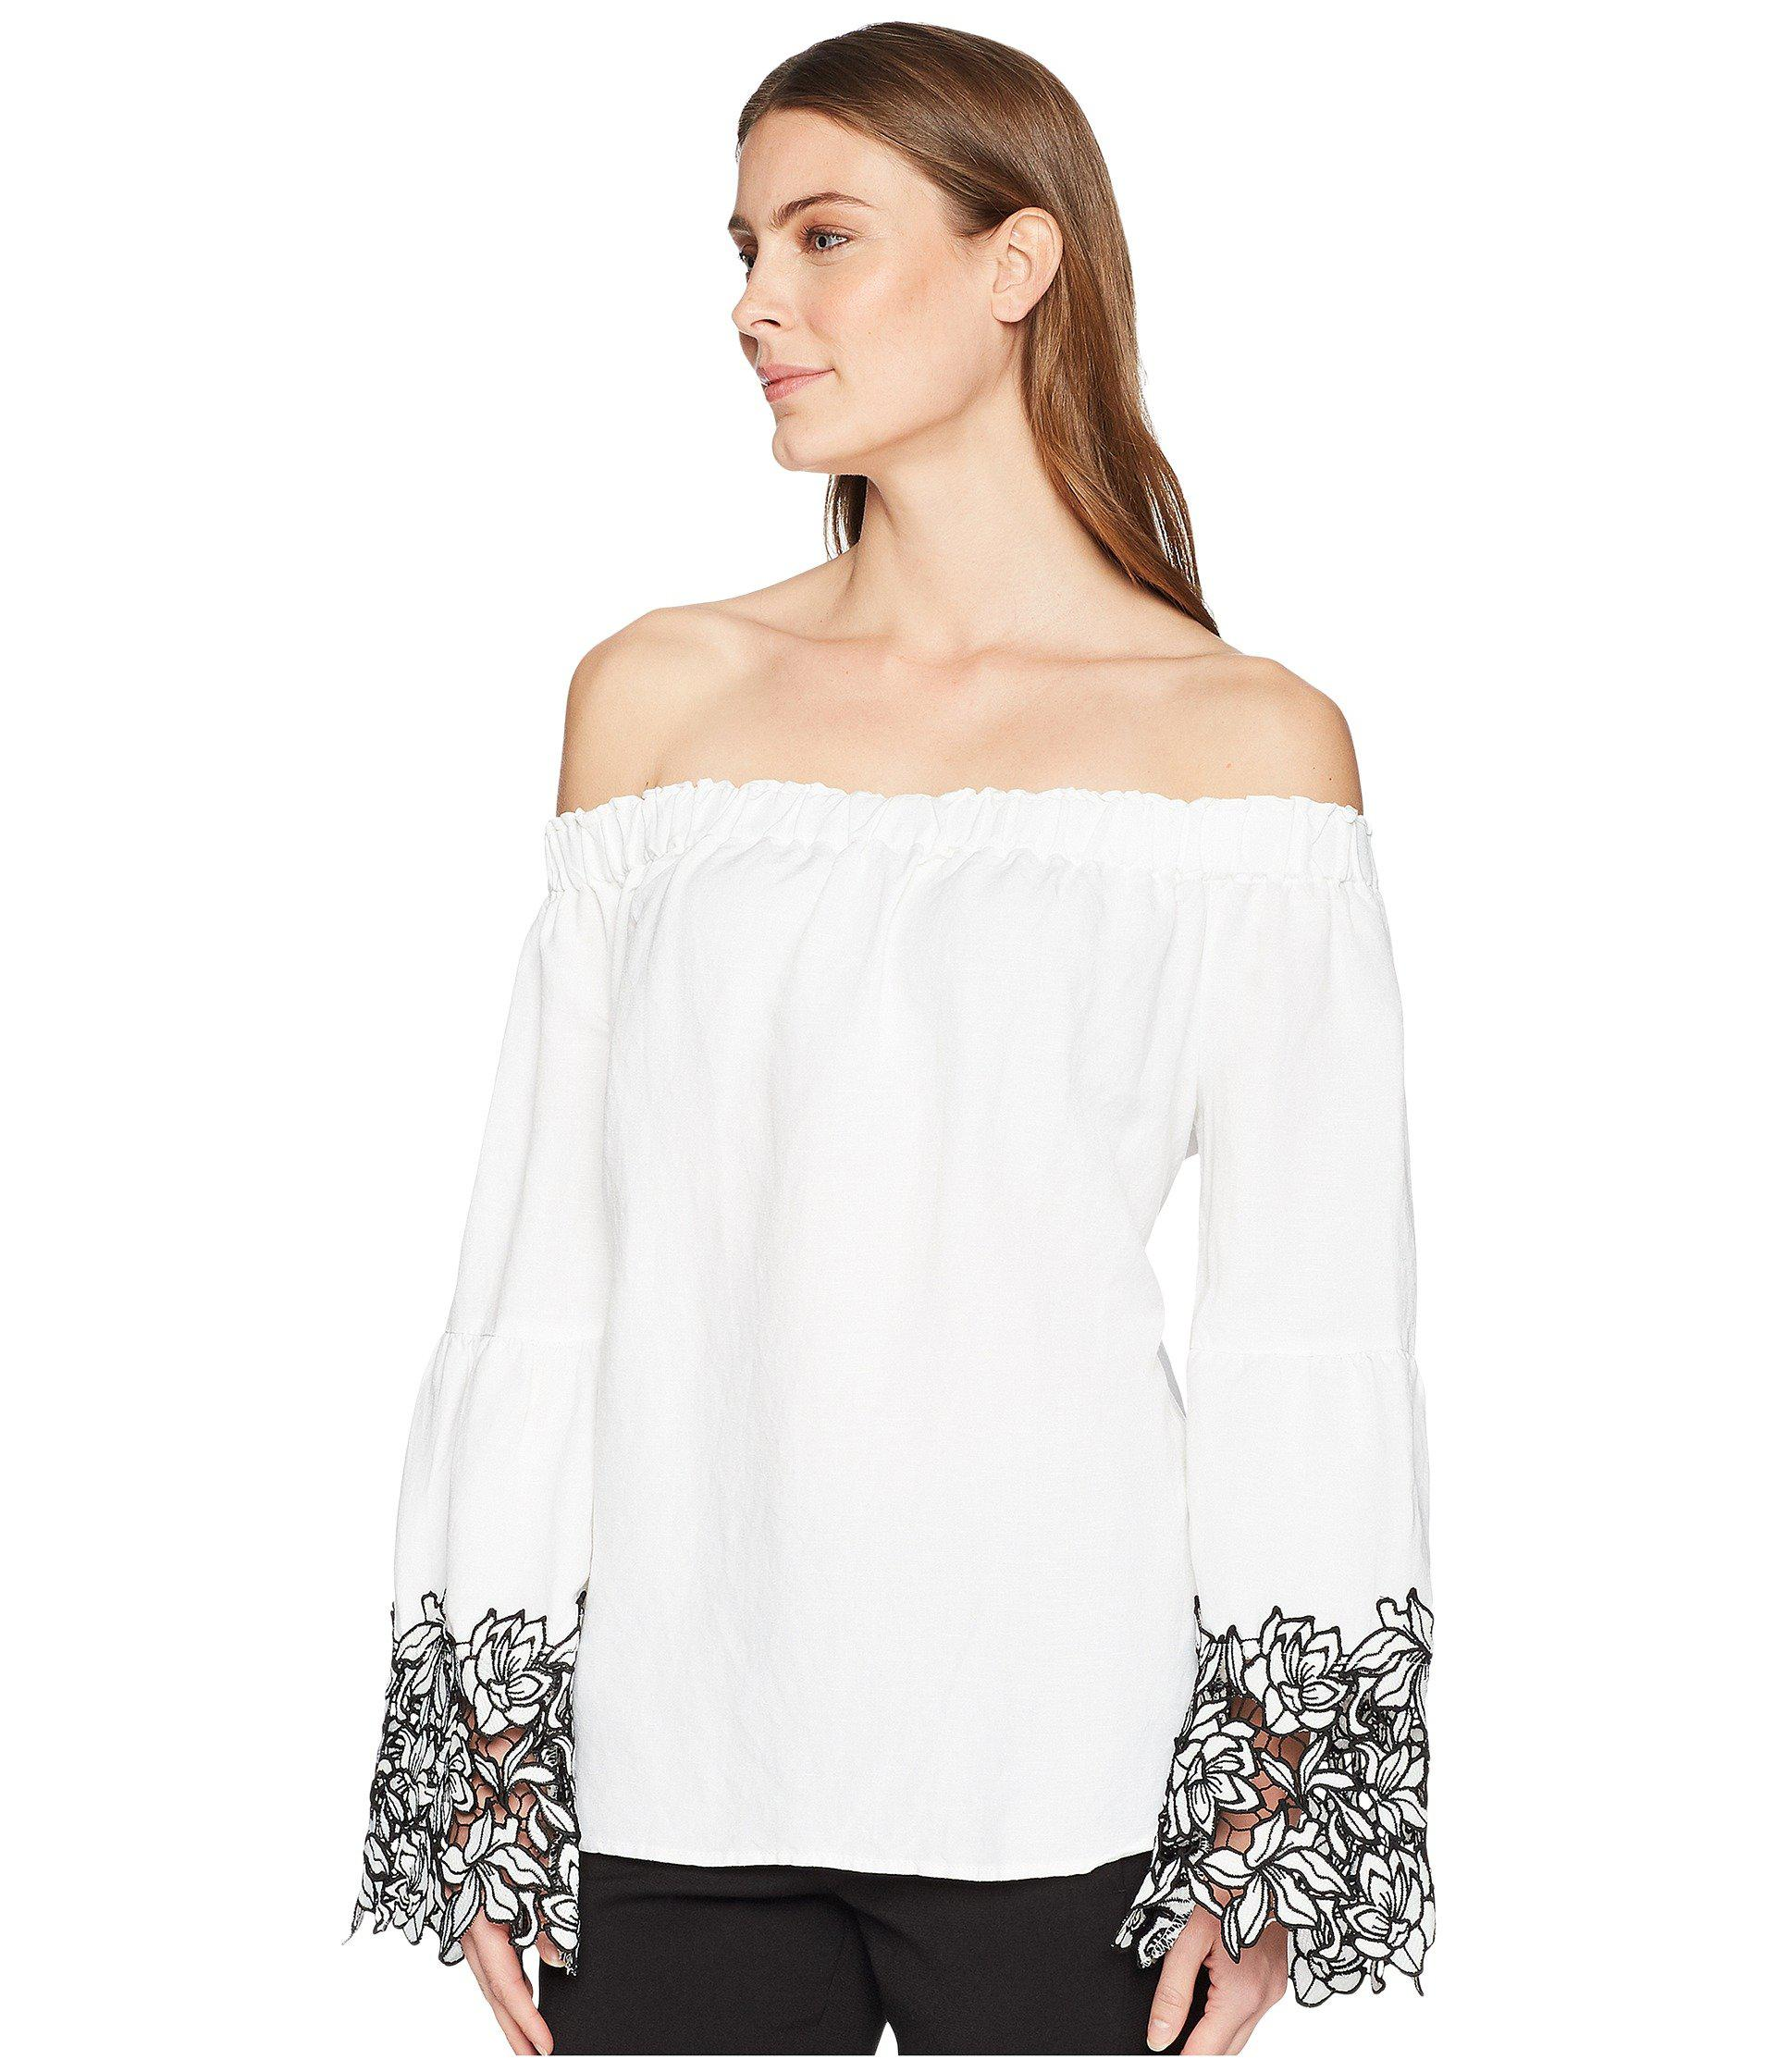 b806e351254 Lyst - Karen Kane Off The Shoulder Top in White - Save 56%